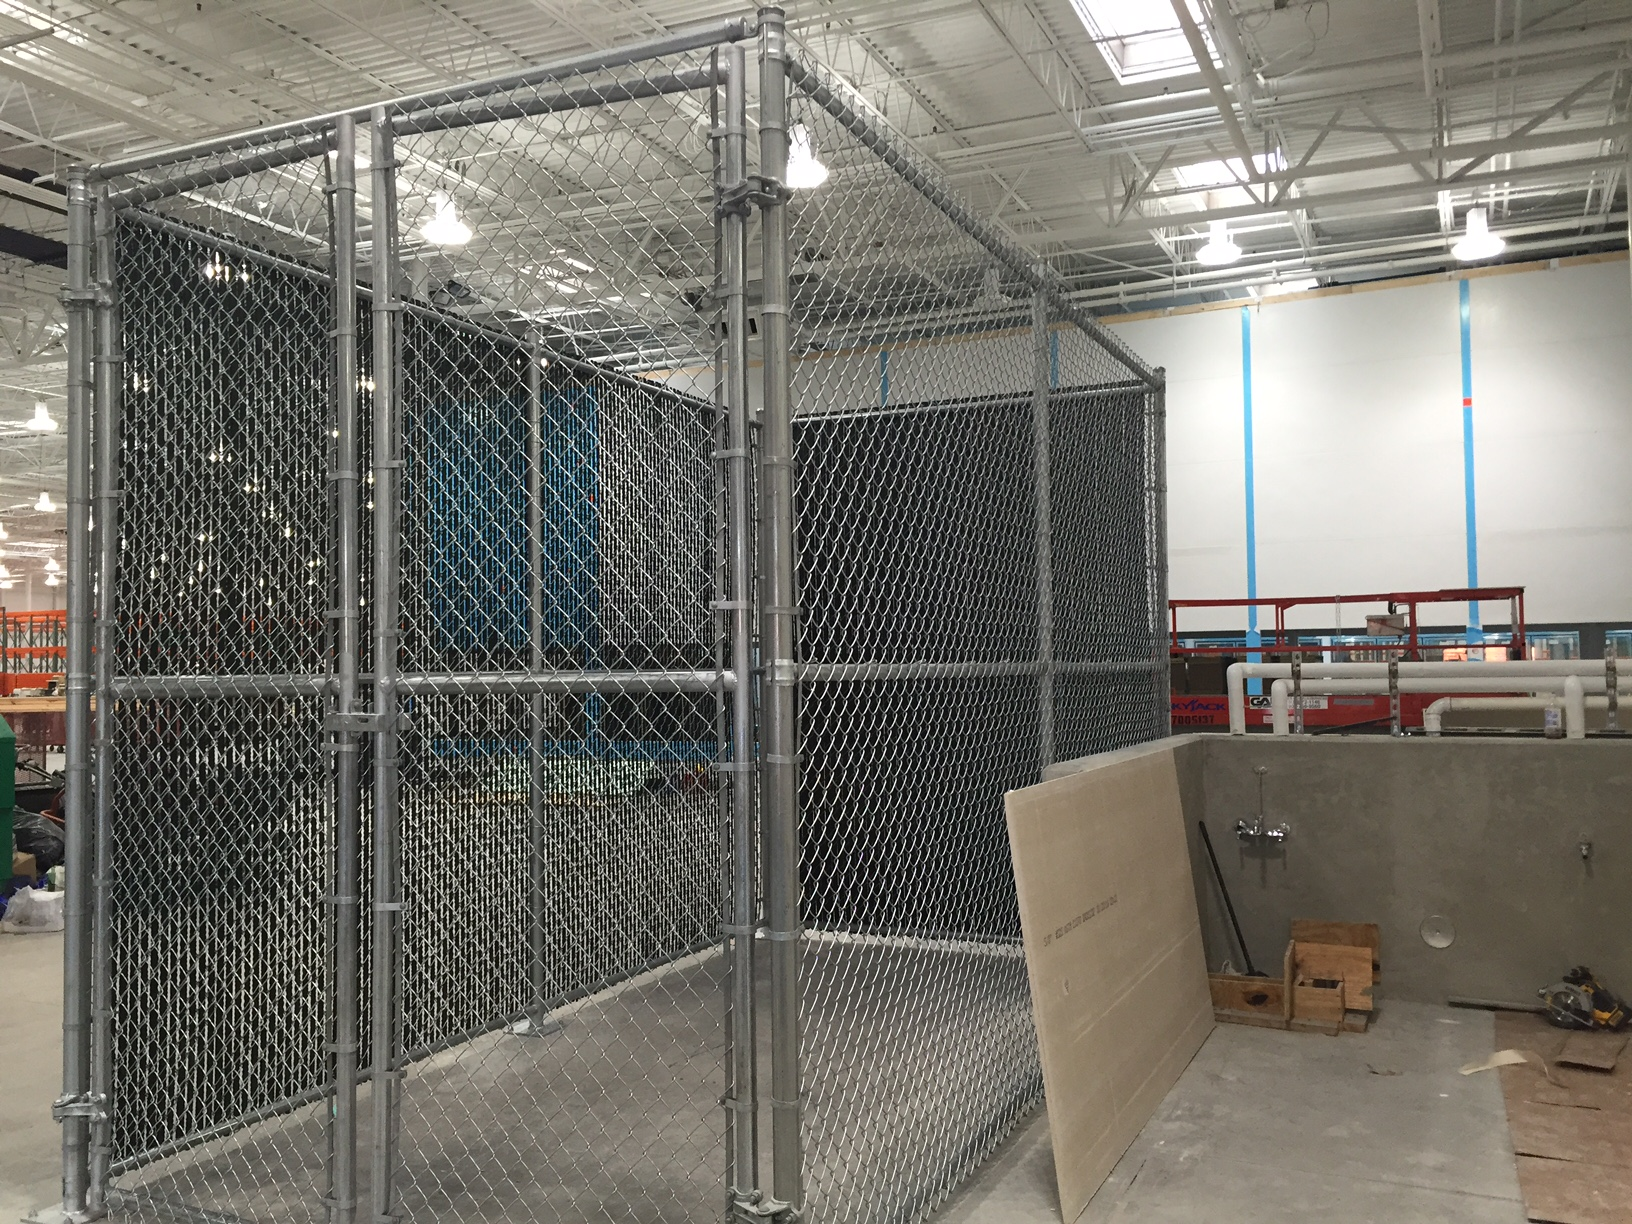 Commercial Amp Industrial Chain Link Fences Nj Fence